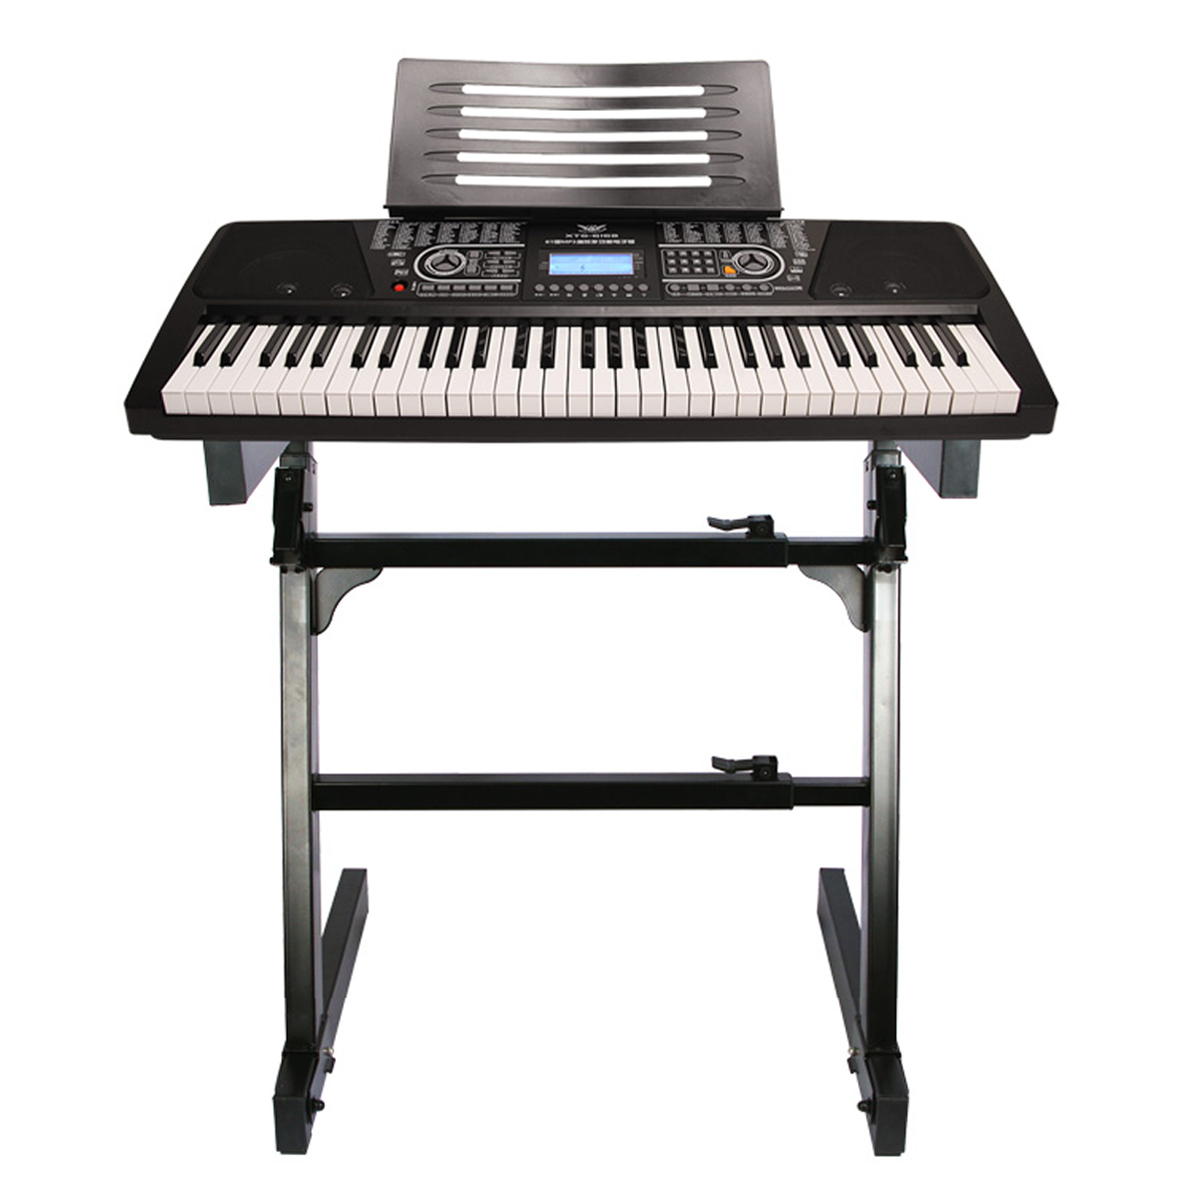 MECO  Adjustable Z-Type DJ Mixer Coffin Keyboard Piano Organ Heavy Duty Z Stand (Keyboard Piano Is Not Included)